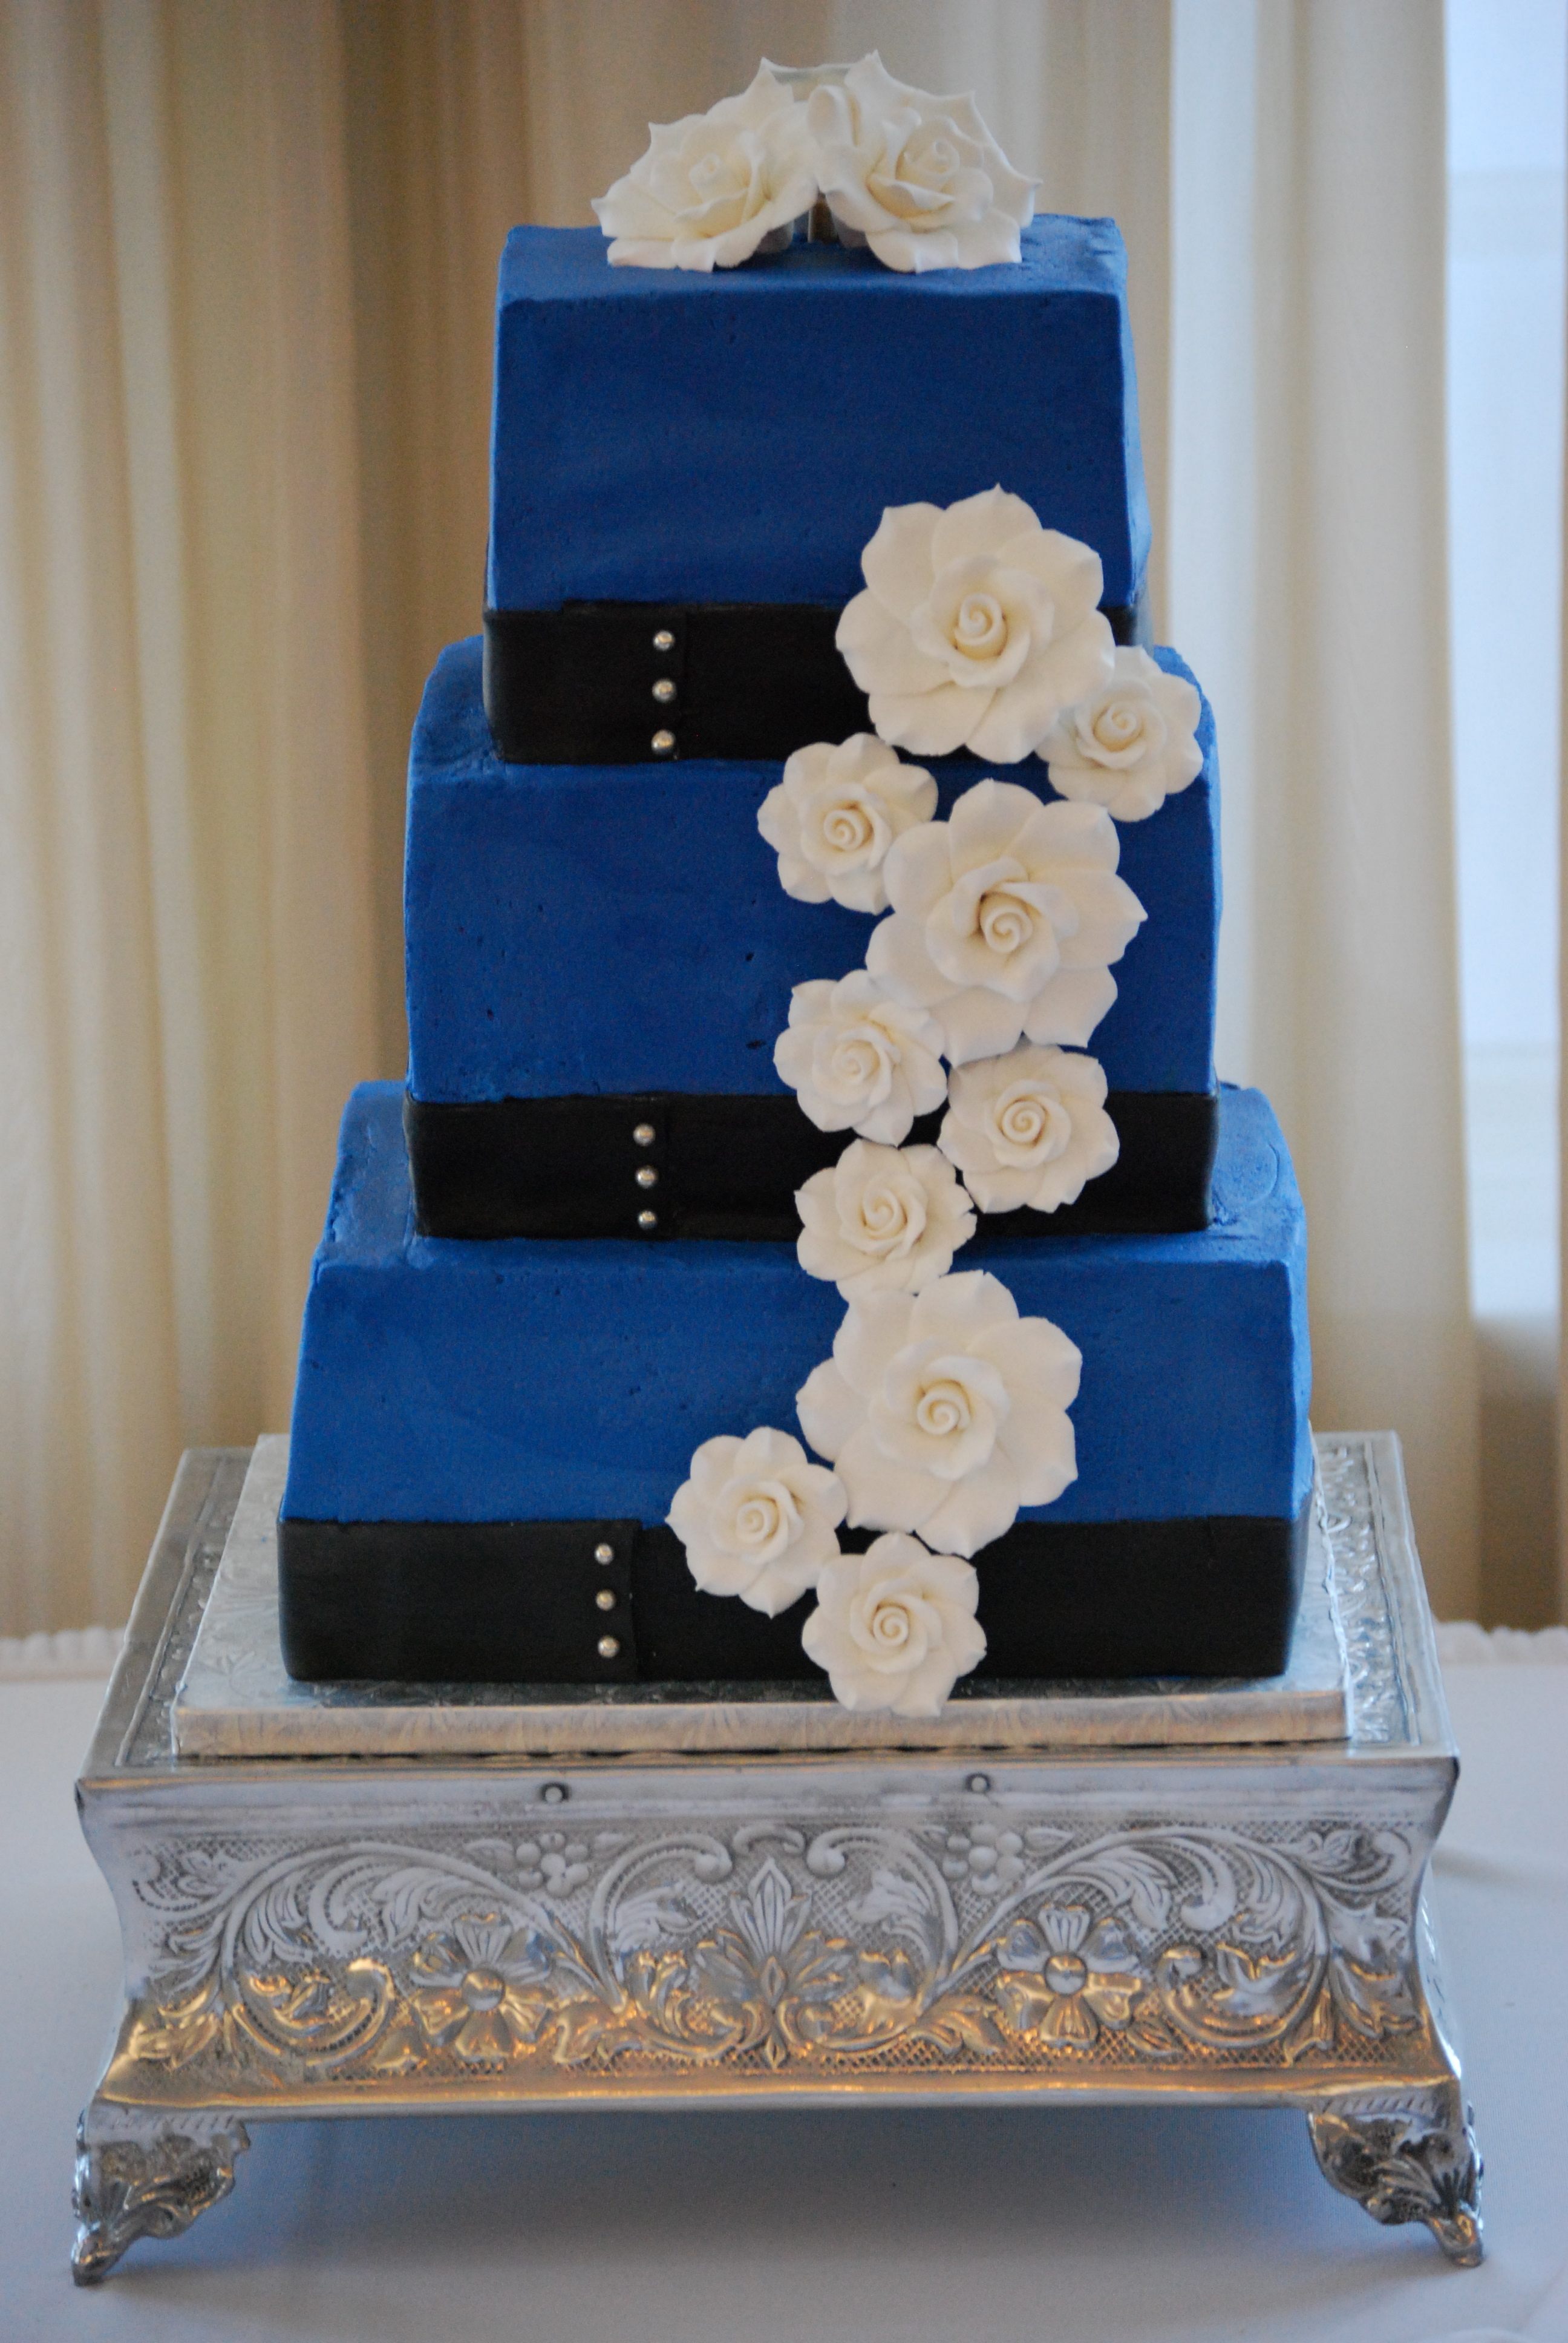 Flowers & Decor, Cakes, white, blue, black, cake, Ribbon Wedding Cakes, Flowers, And, Ribbon, Gardenias, Occasionally cake